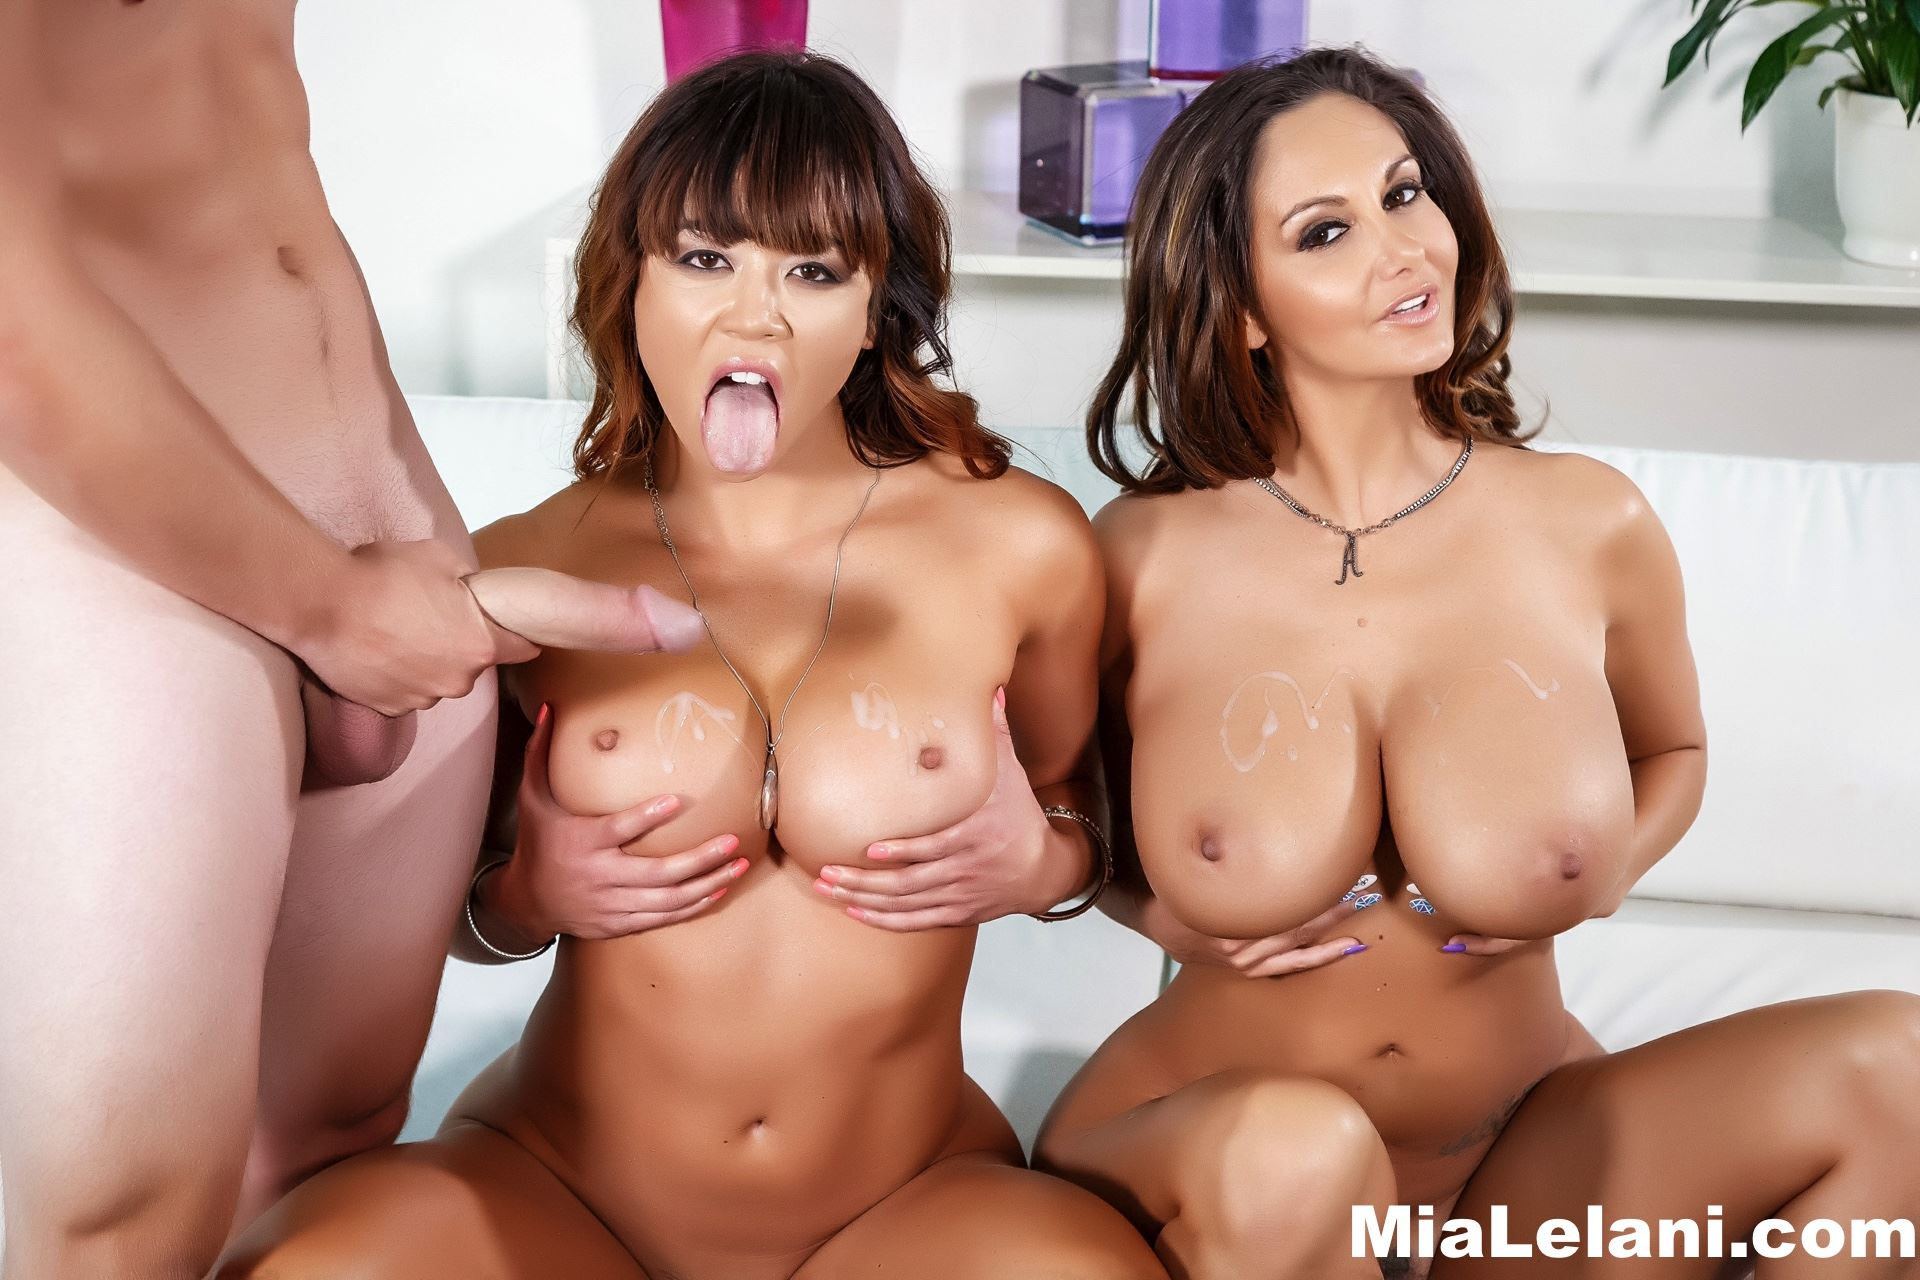 Gallery: Mia Lelani gets fucked in threesome with her friend